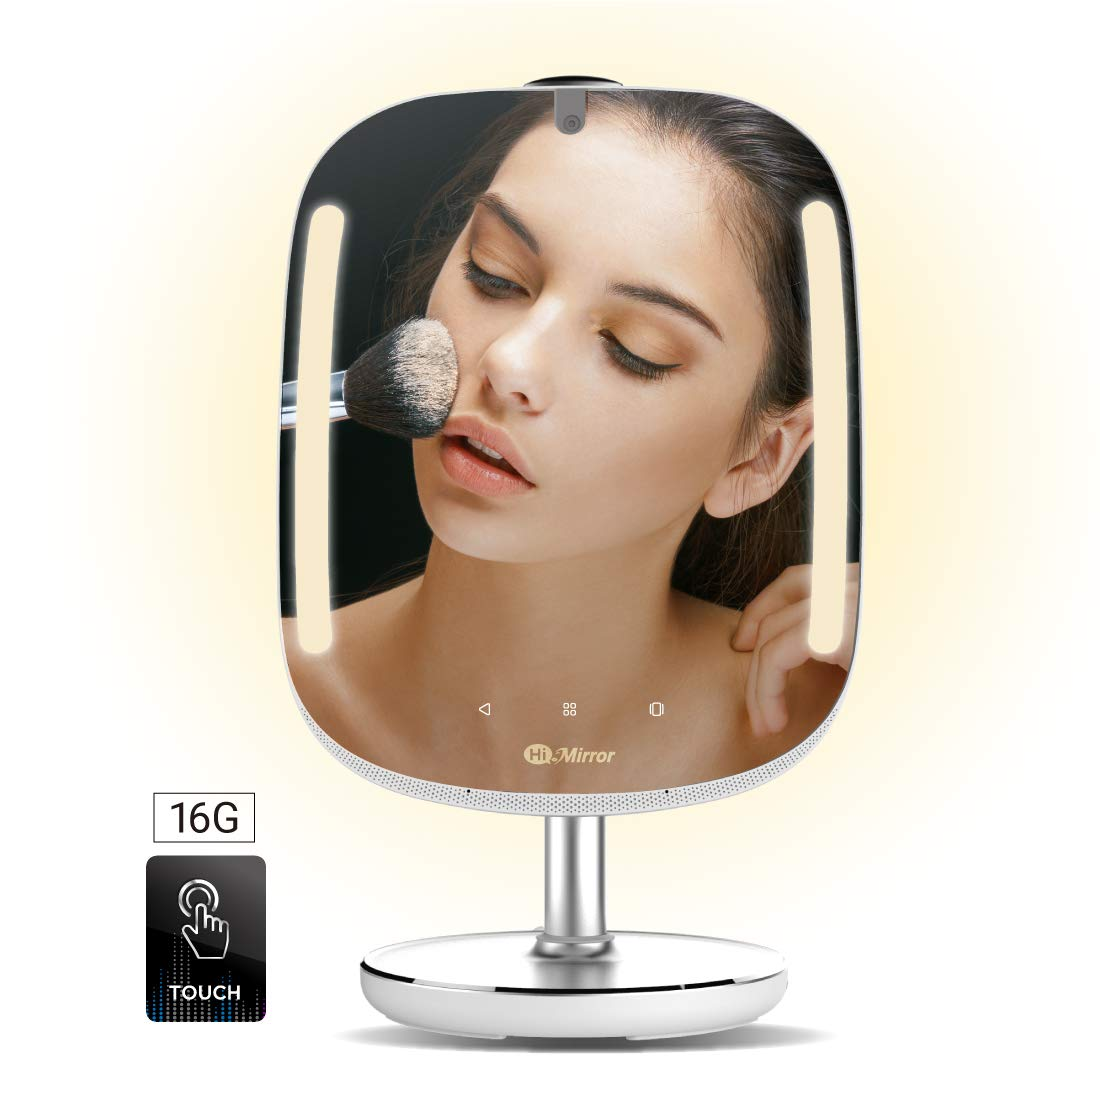 HiMirror Mini 16G: Smart Beauty Mirror with Skin Analyzer, Makeup Mirror with LED Lights, Smart Vanity Mirror with 2X 3X Magnification, Lighted Cosmetic Mirror with Virtual Makeover by HiMirror